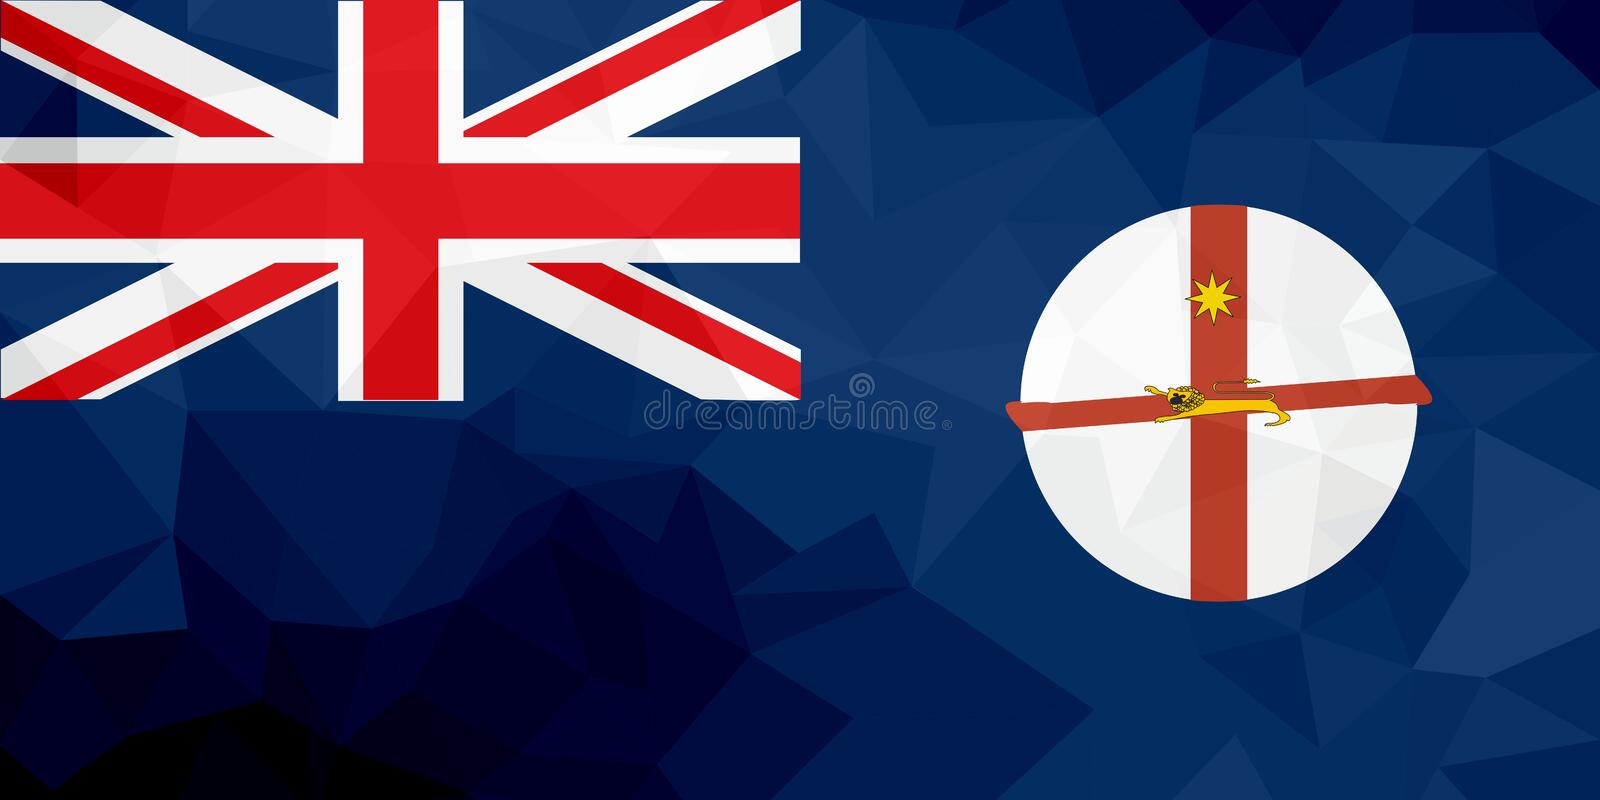 New South Wales polygonal flag. Mosaic modern background. Geometric design vector illustration